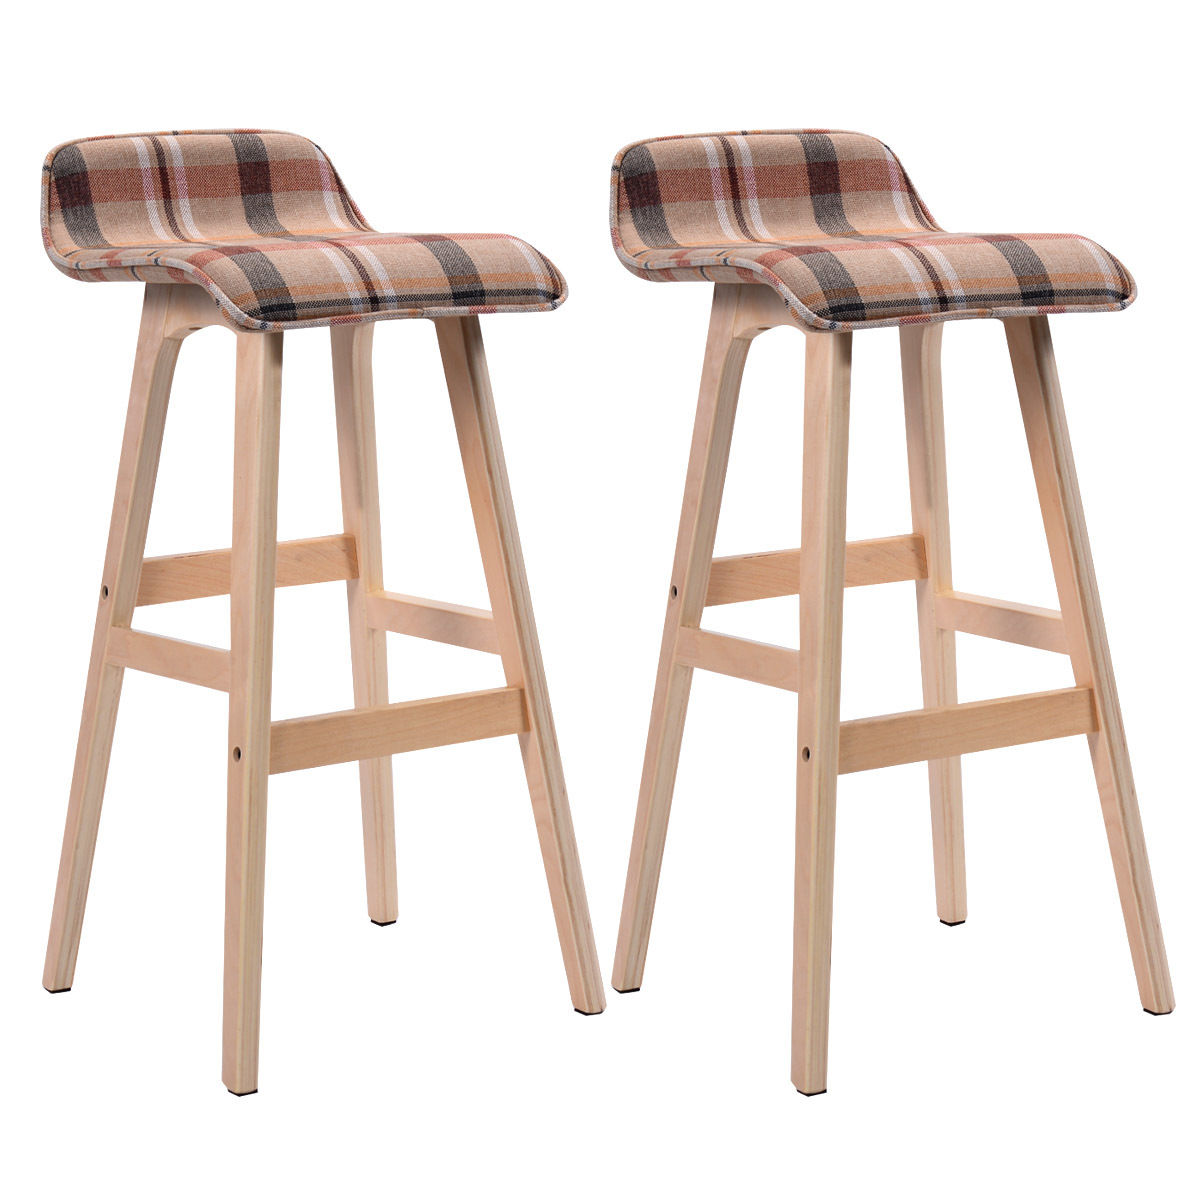 Giantex Set Of 2 29-Inch Vintage Wood Bar Stool Modern Dining Chair Counter Tall Linen Fabric Kitchen Bar Furniture 2*HW52976RE